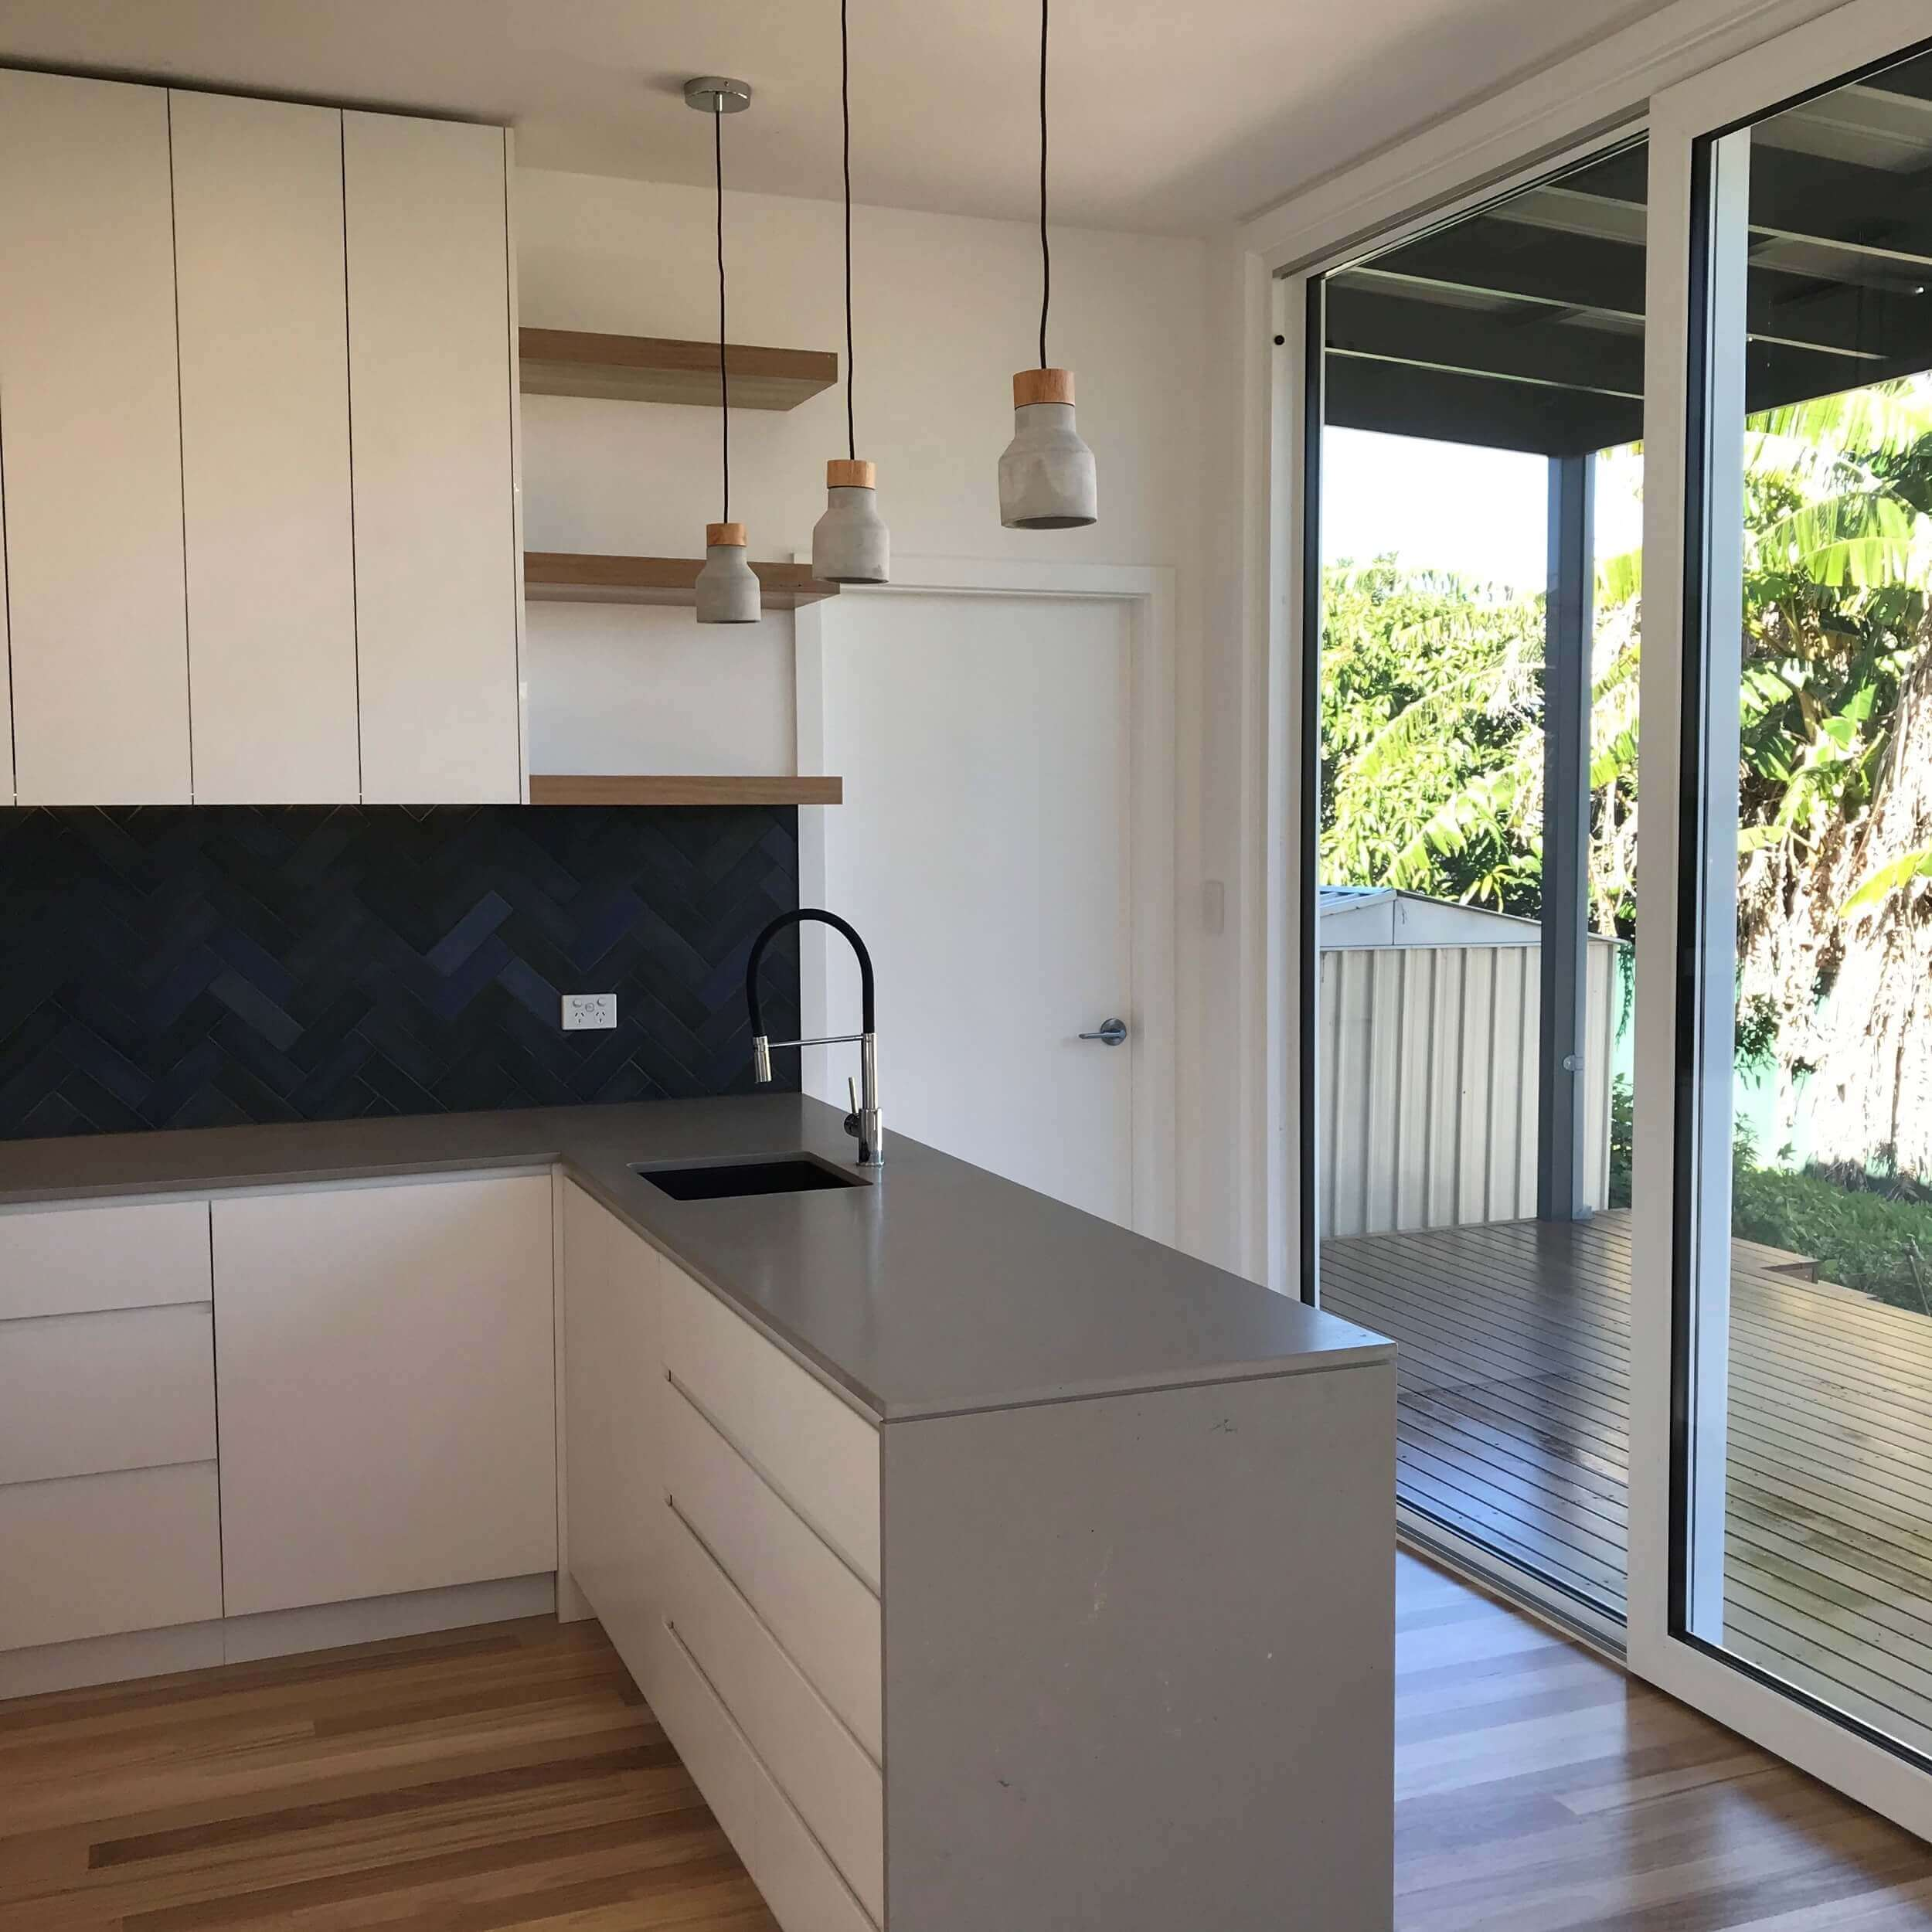 Clinton Built, Builders, Commercial, Residential, Joinery, Construction, Professional, Sydney